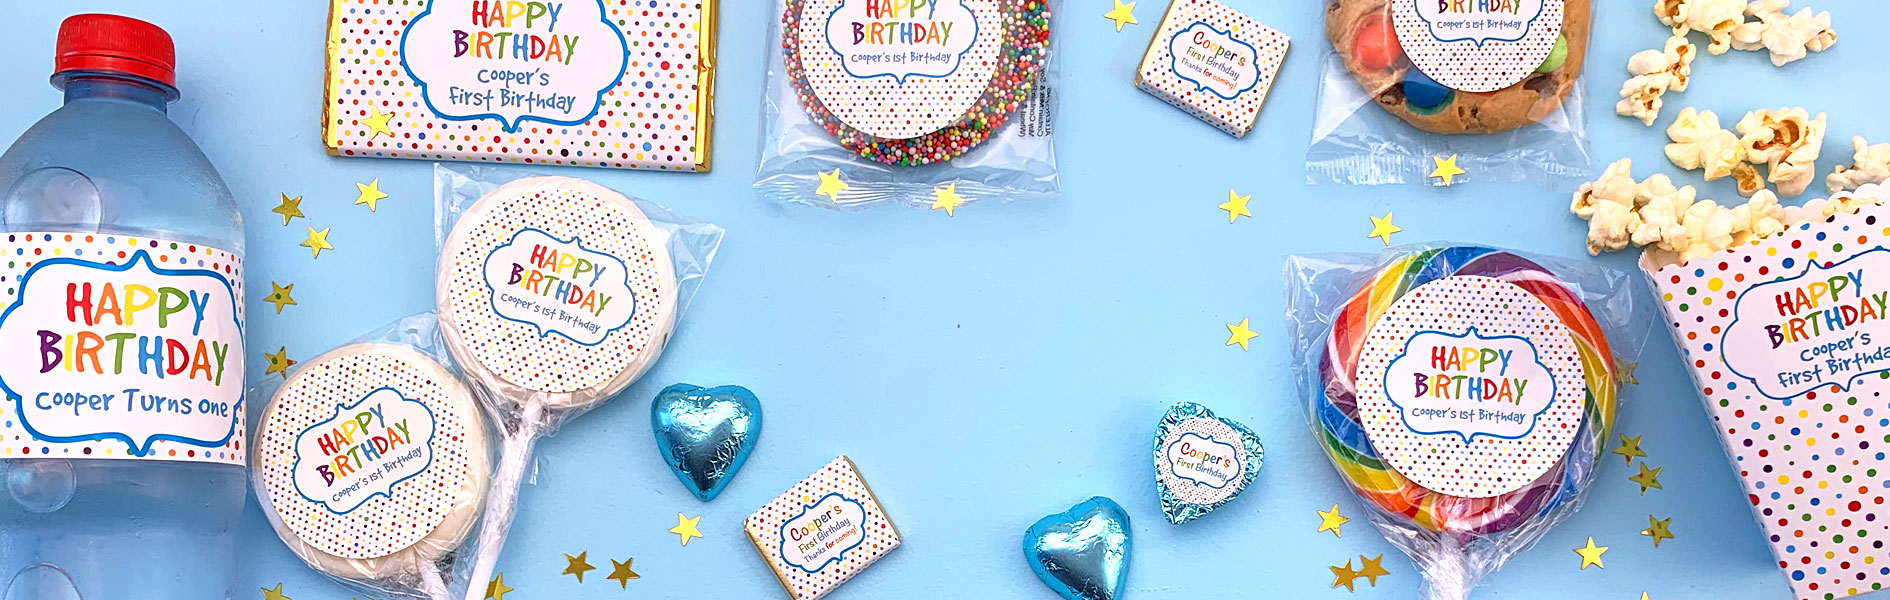 Personalised Chocolates And Decorations For Kids Birthday Parties